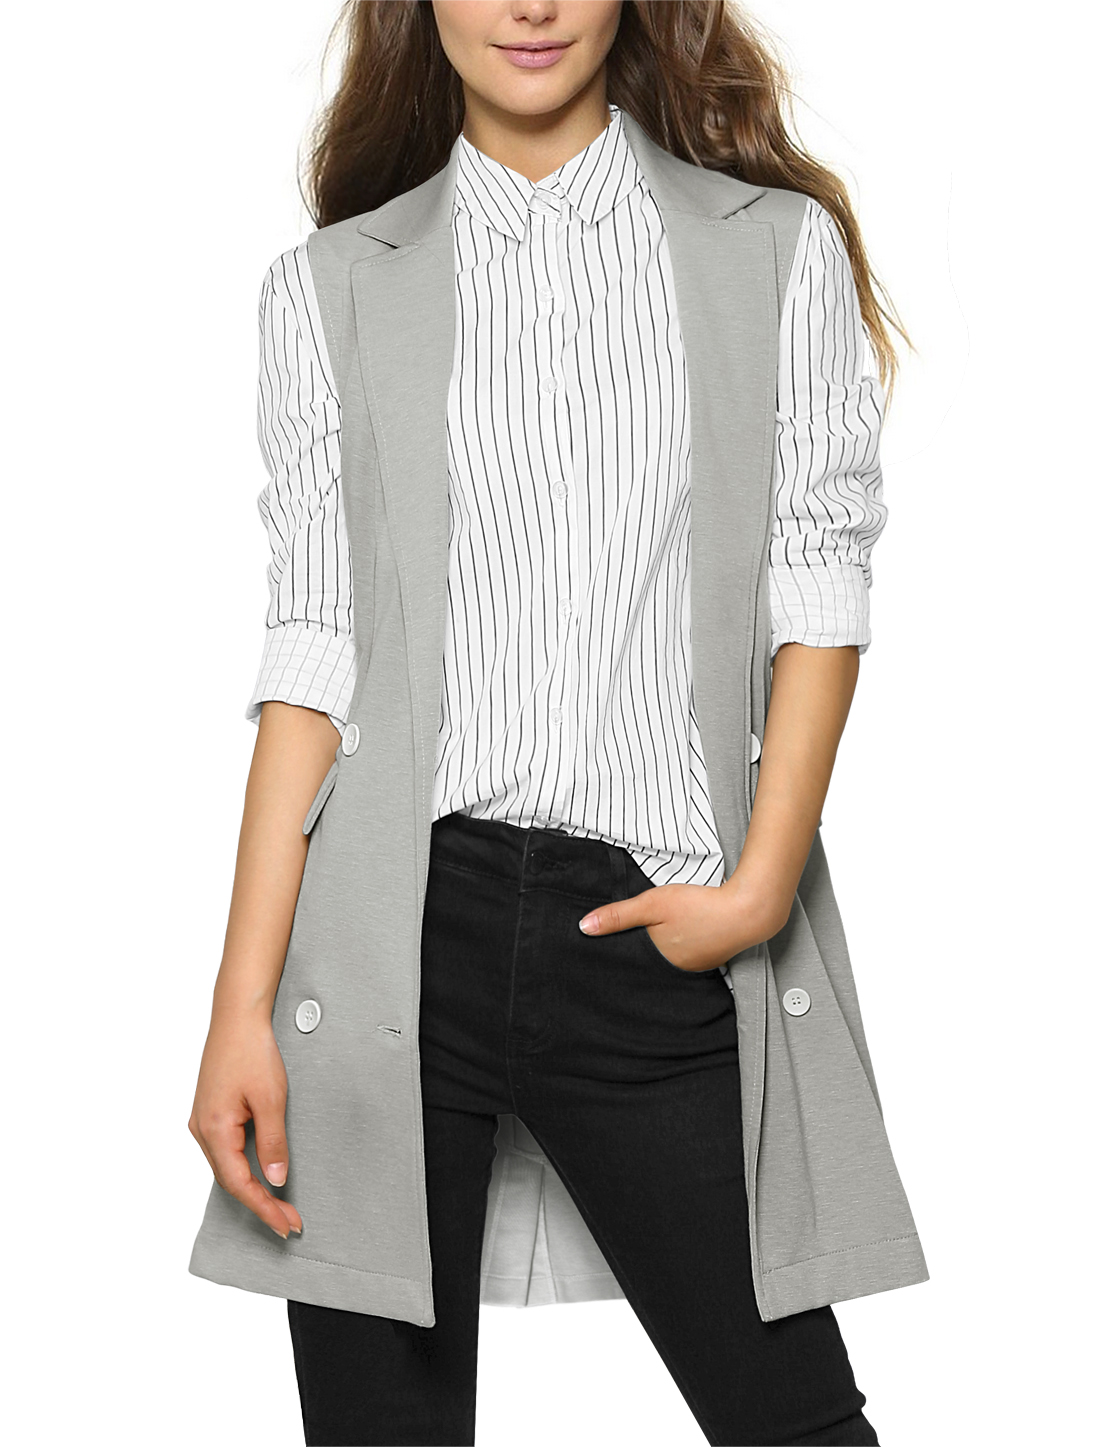 Allegra K Women Notched Lapel Double Breasted Longline Vest Jacket Light Gray S